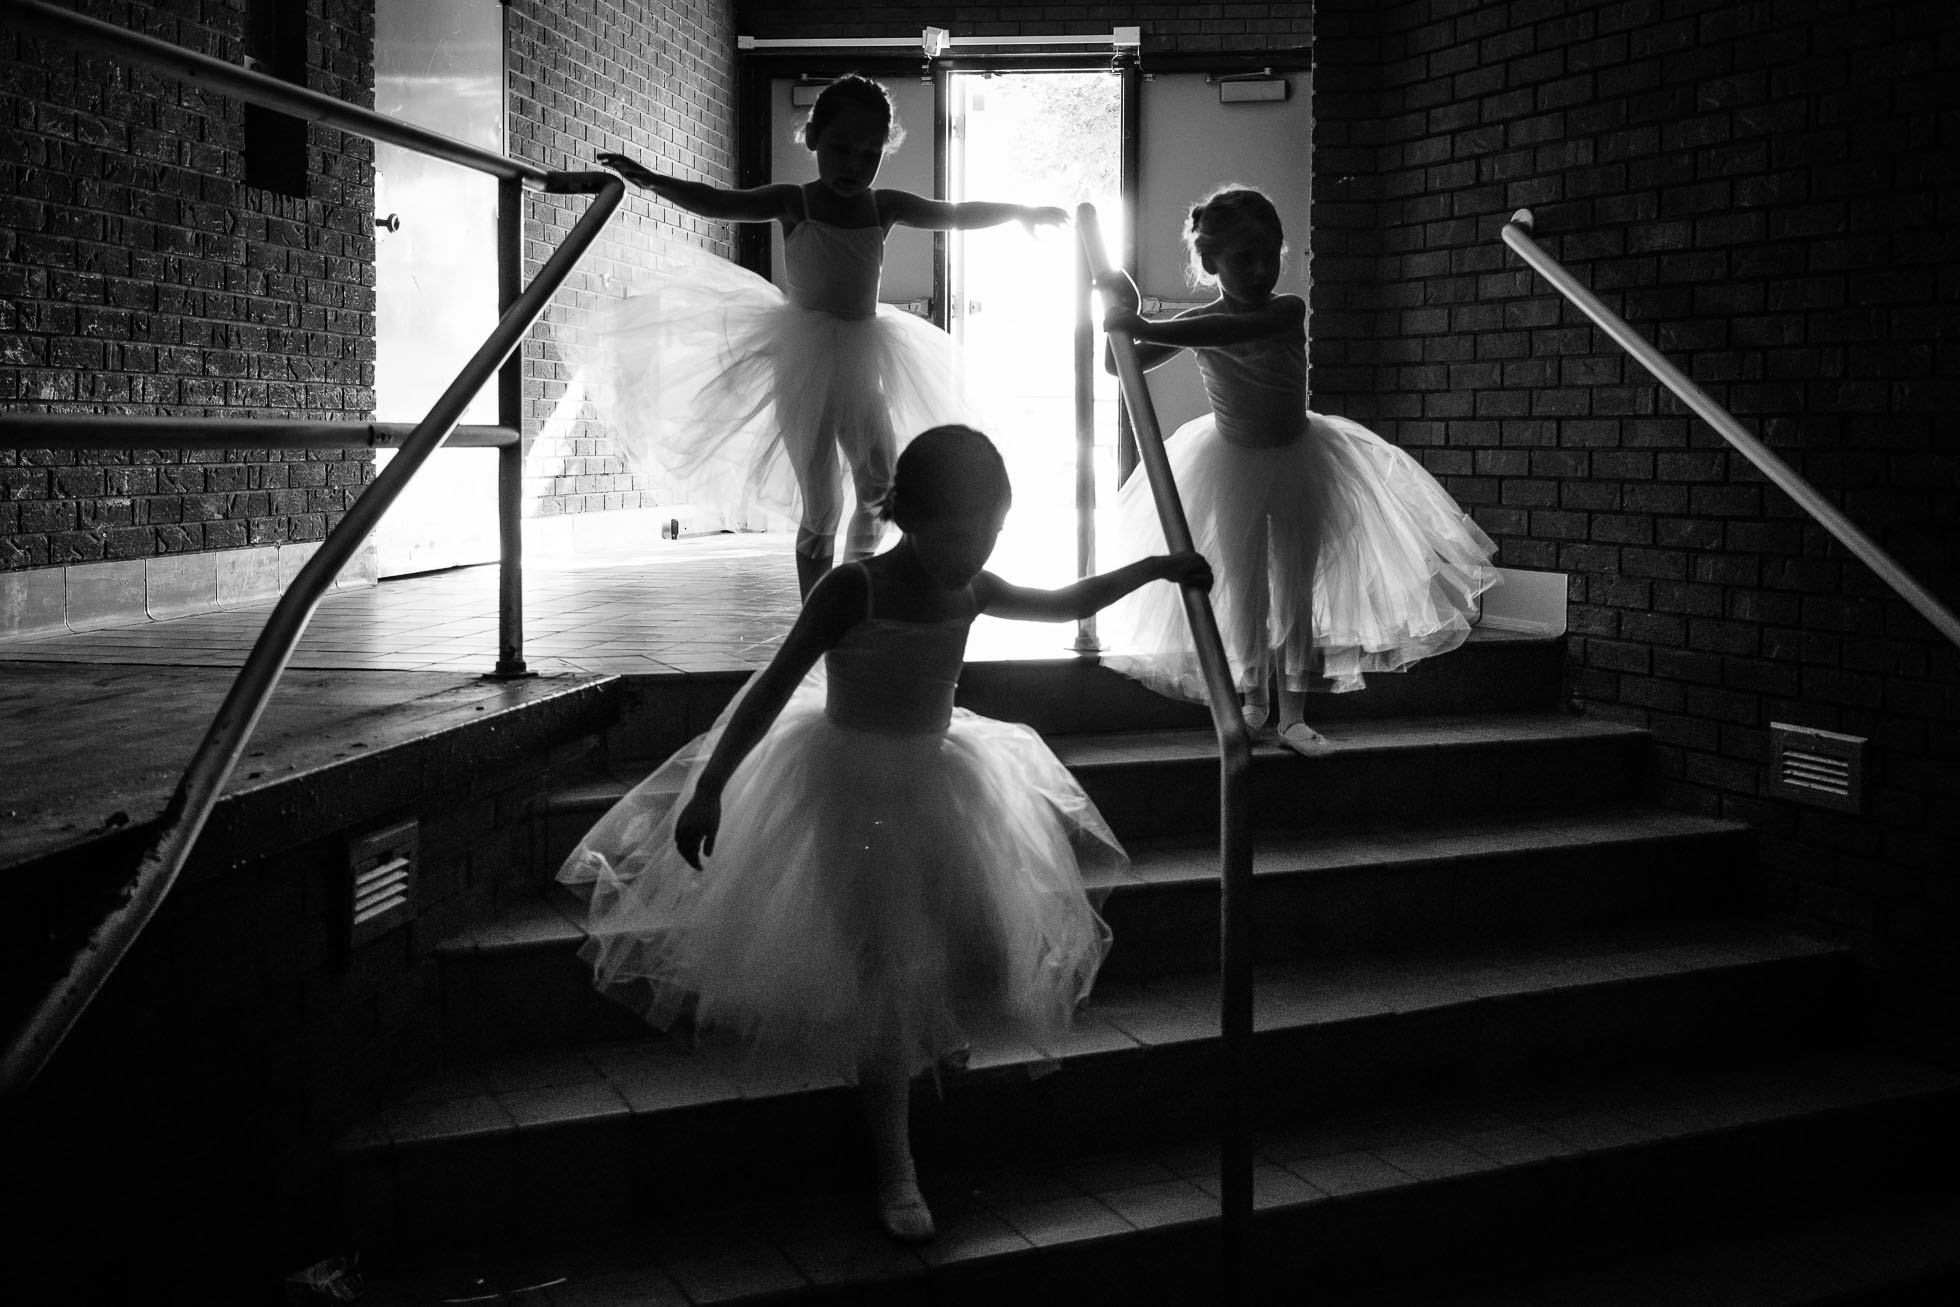 three little ballerinas are at their ballet rehearsal captured in a real life photography style